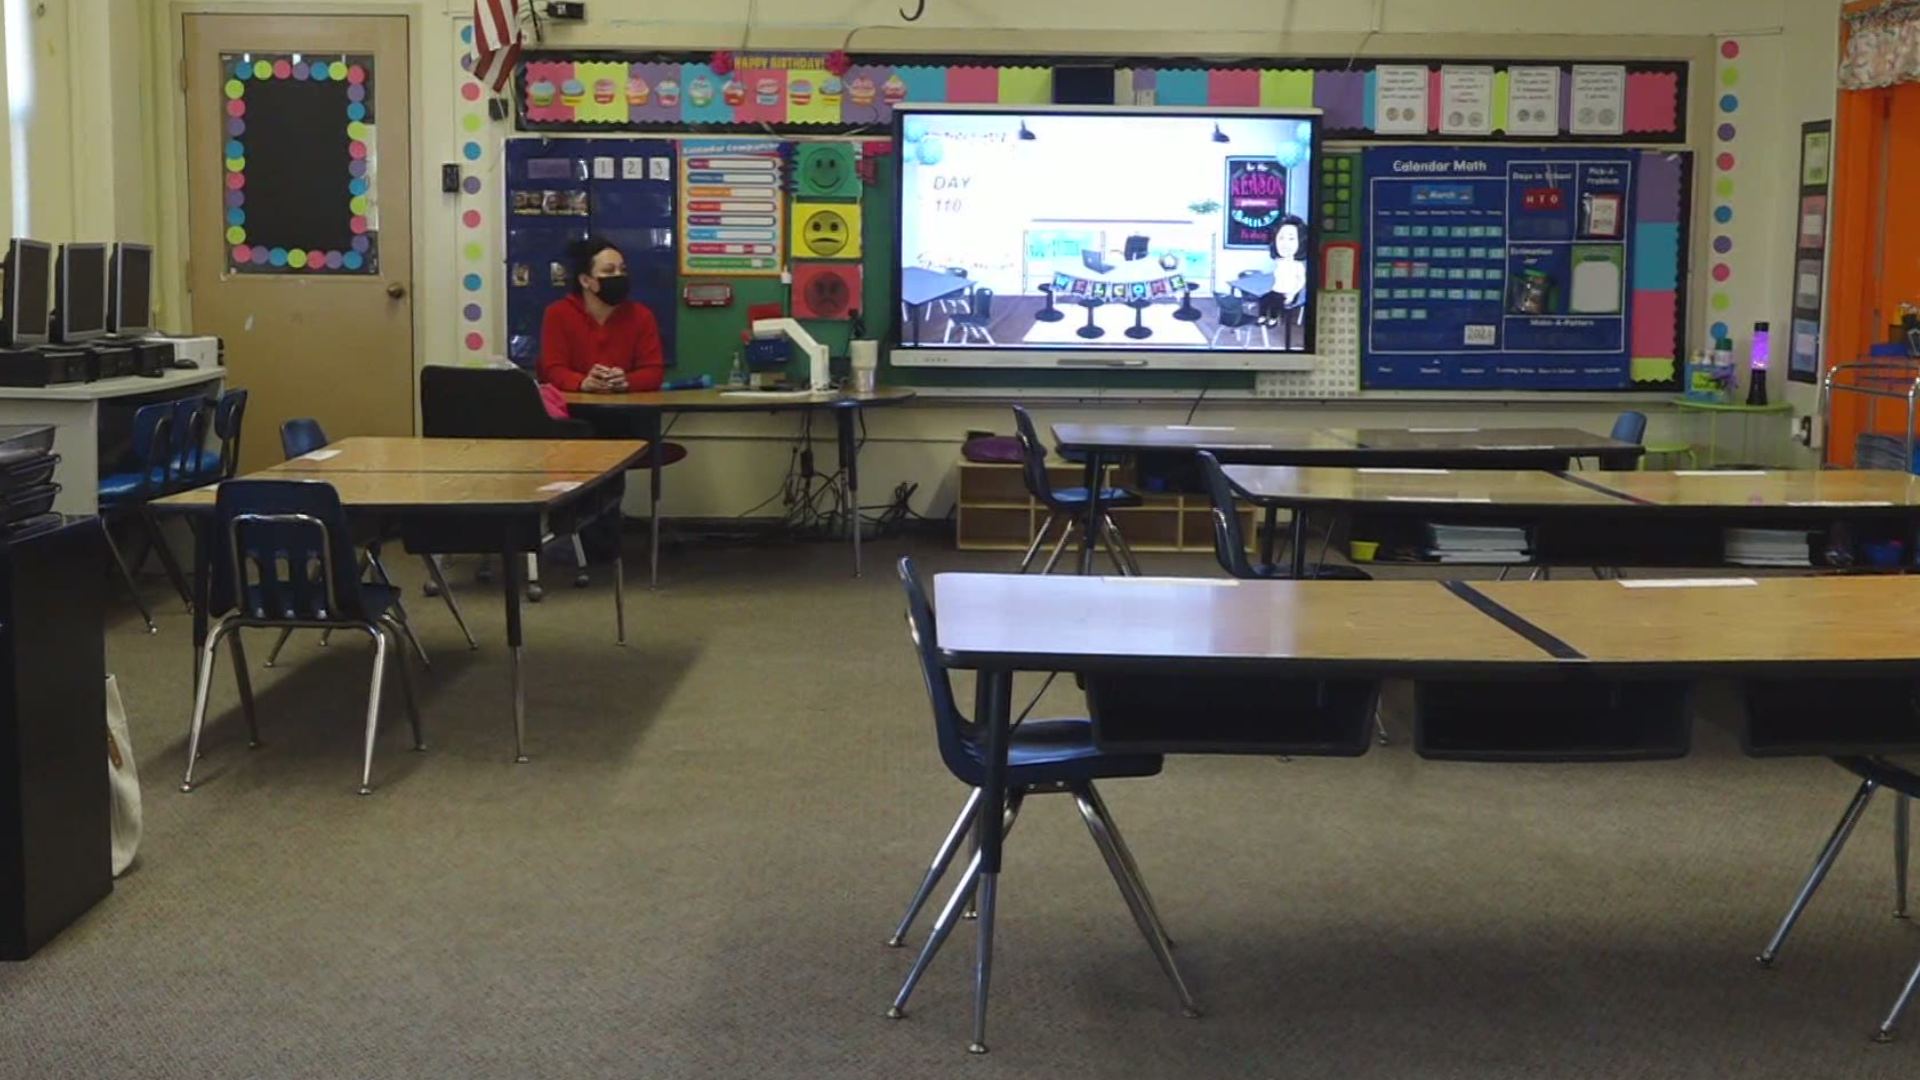 I can't wait' | Norfolk Public School teachers back in the classroom,  preparing for students | 13newsnow.com